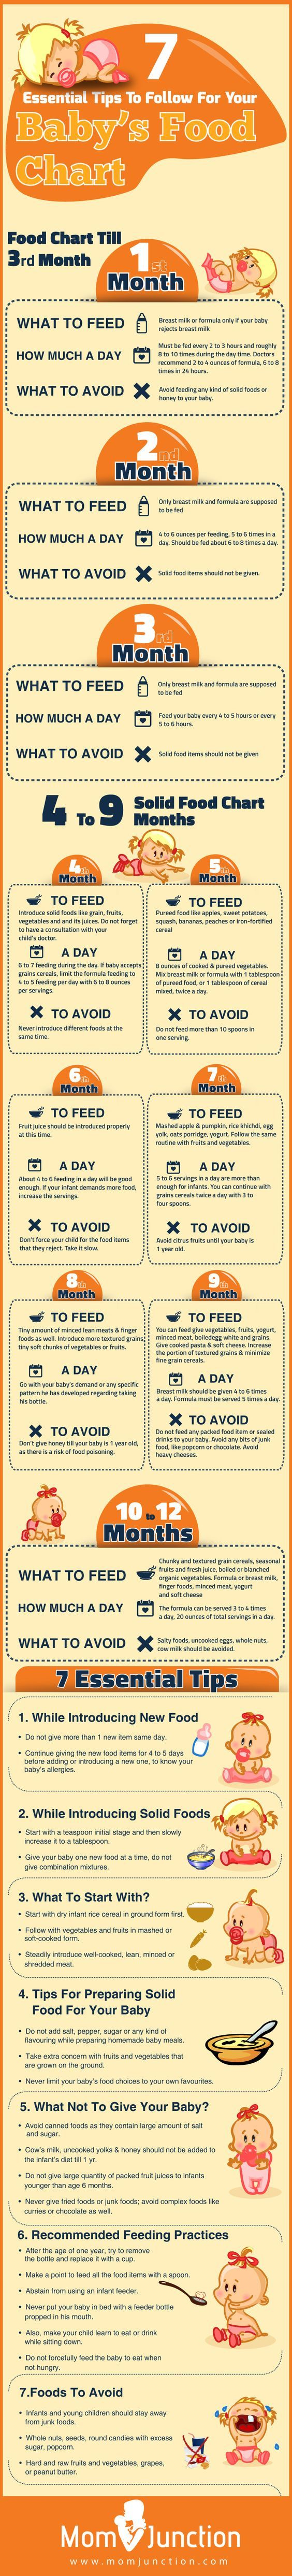 As a mom, you need to know what food to provide at each stage. If you aren't aware of complete baby feed, check out this baby food chart to get a quick idea: